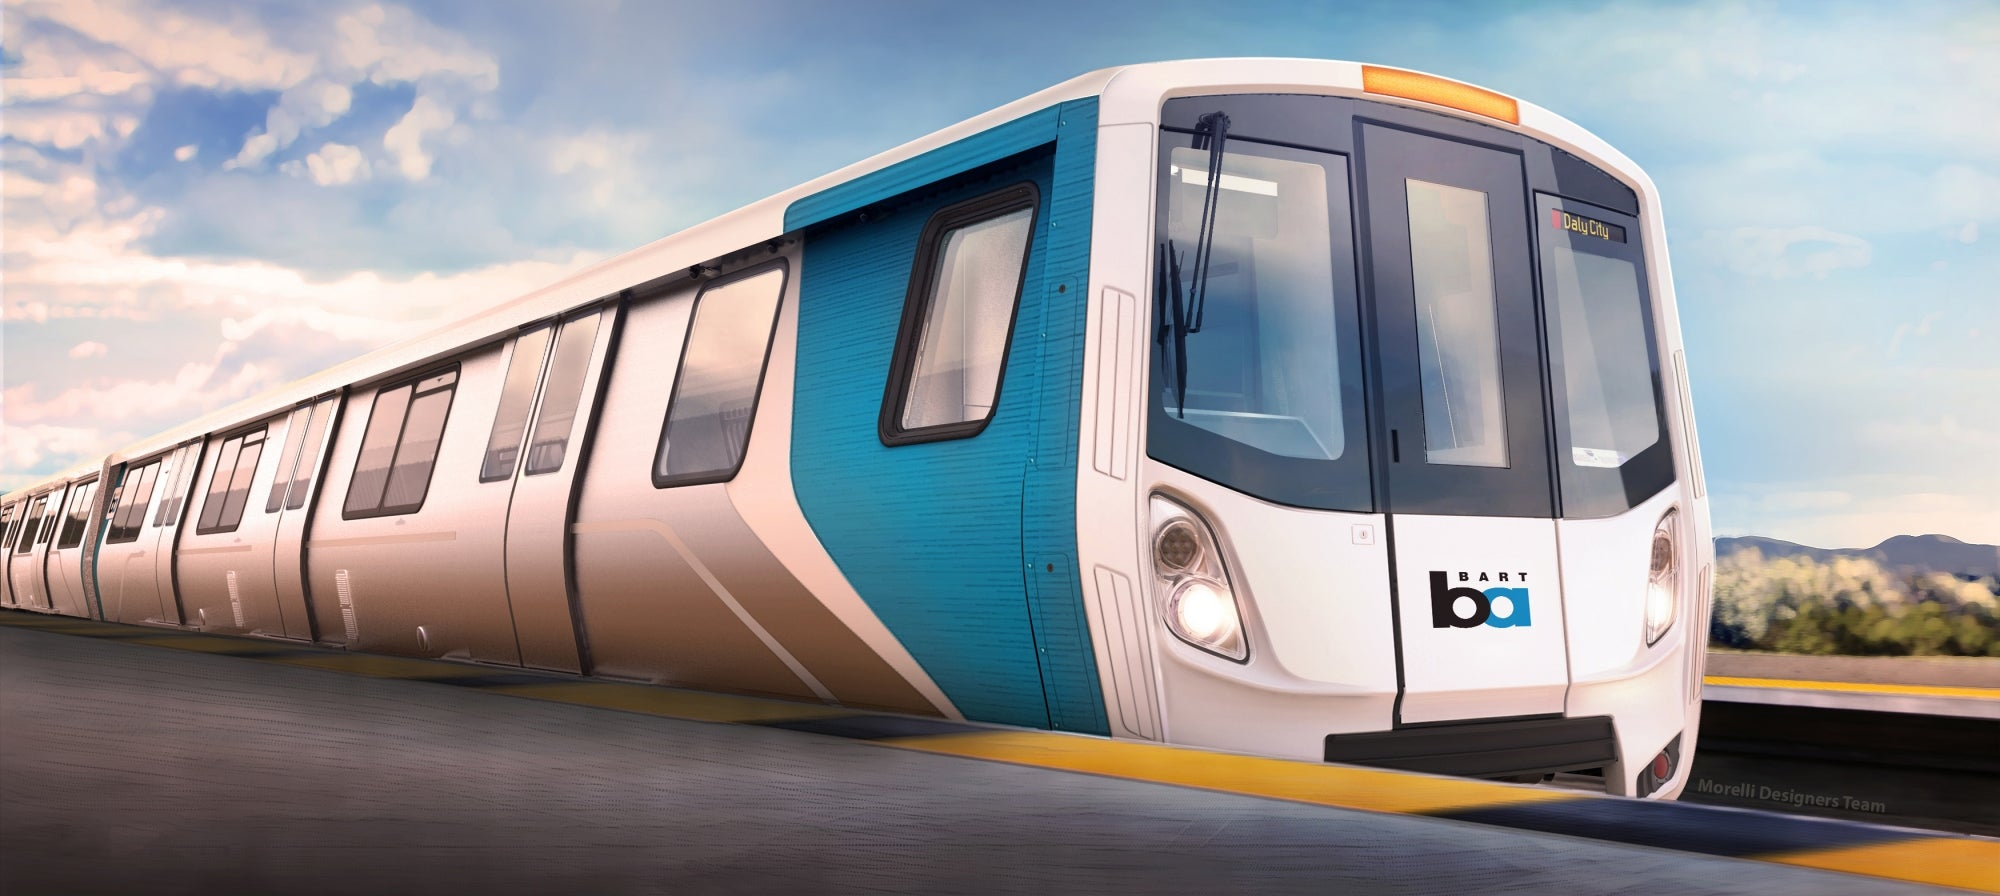 New BART Rail Car Rendering